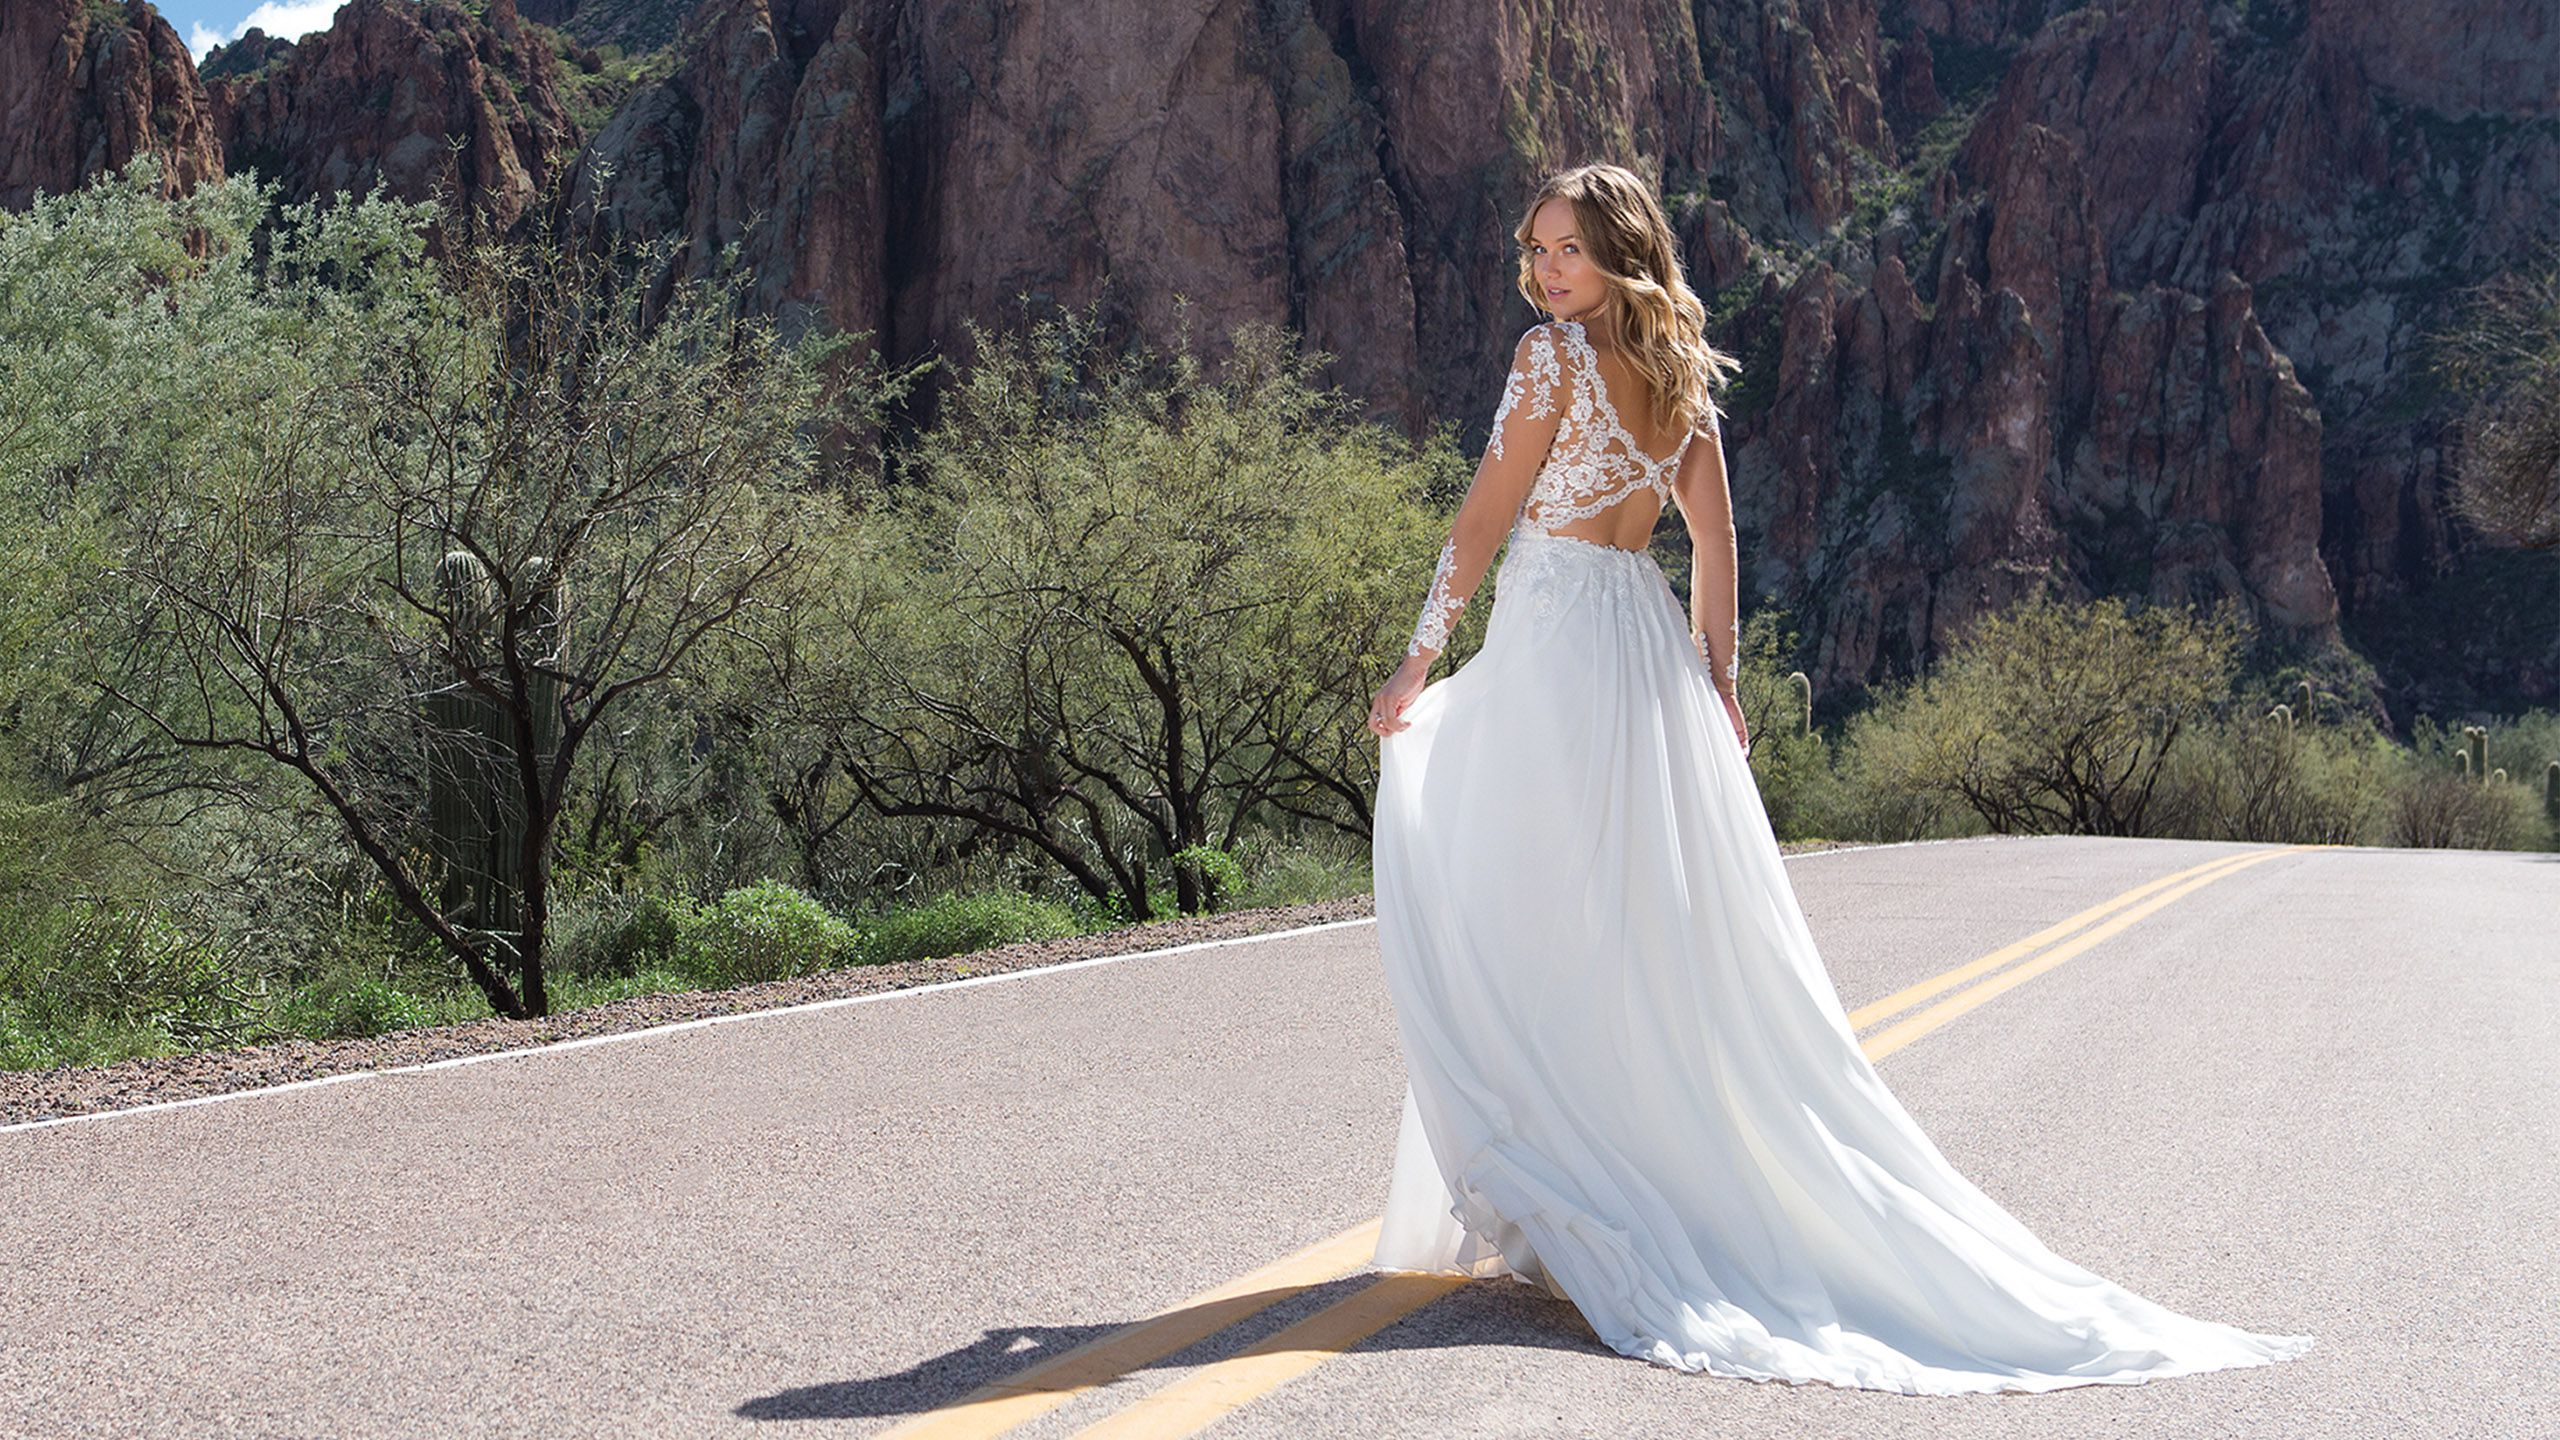 - Style 1130: Lace V-Neck Gown with Illusion Sleeves and Keyhole Back